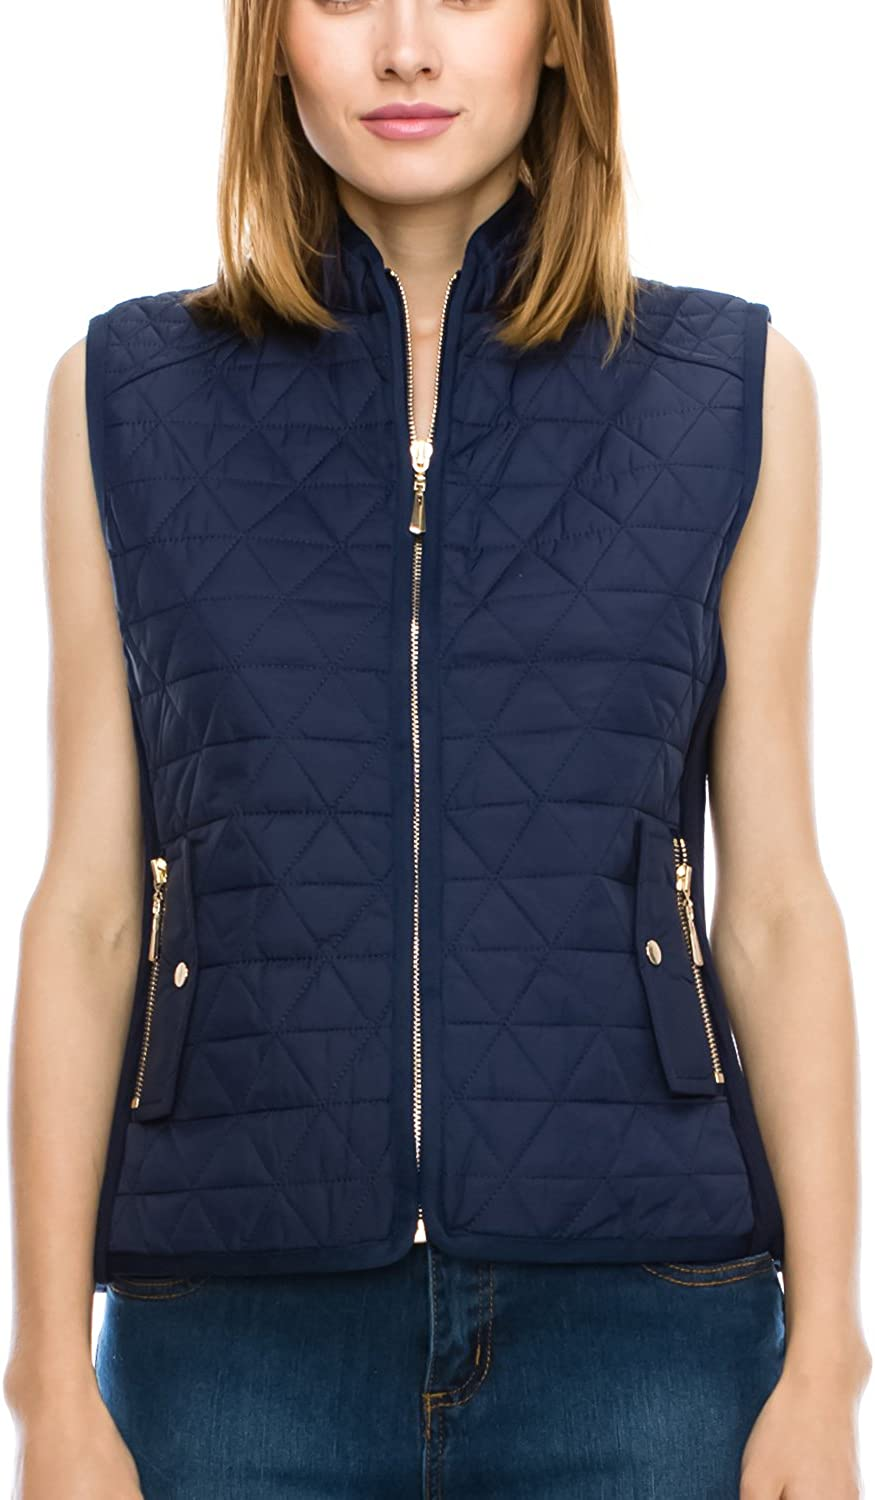 JEZEEL Women's Casual Quilted Padding Vest.(J600_Small to 4X)